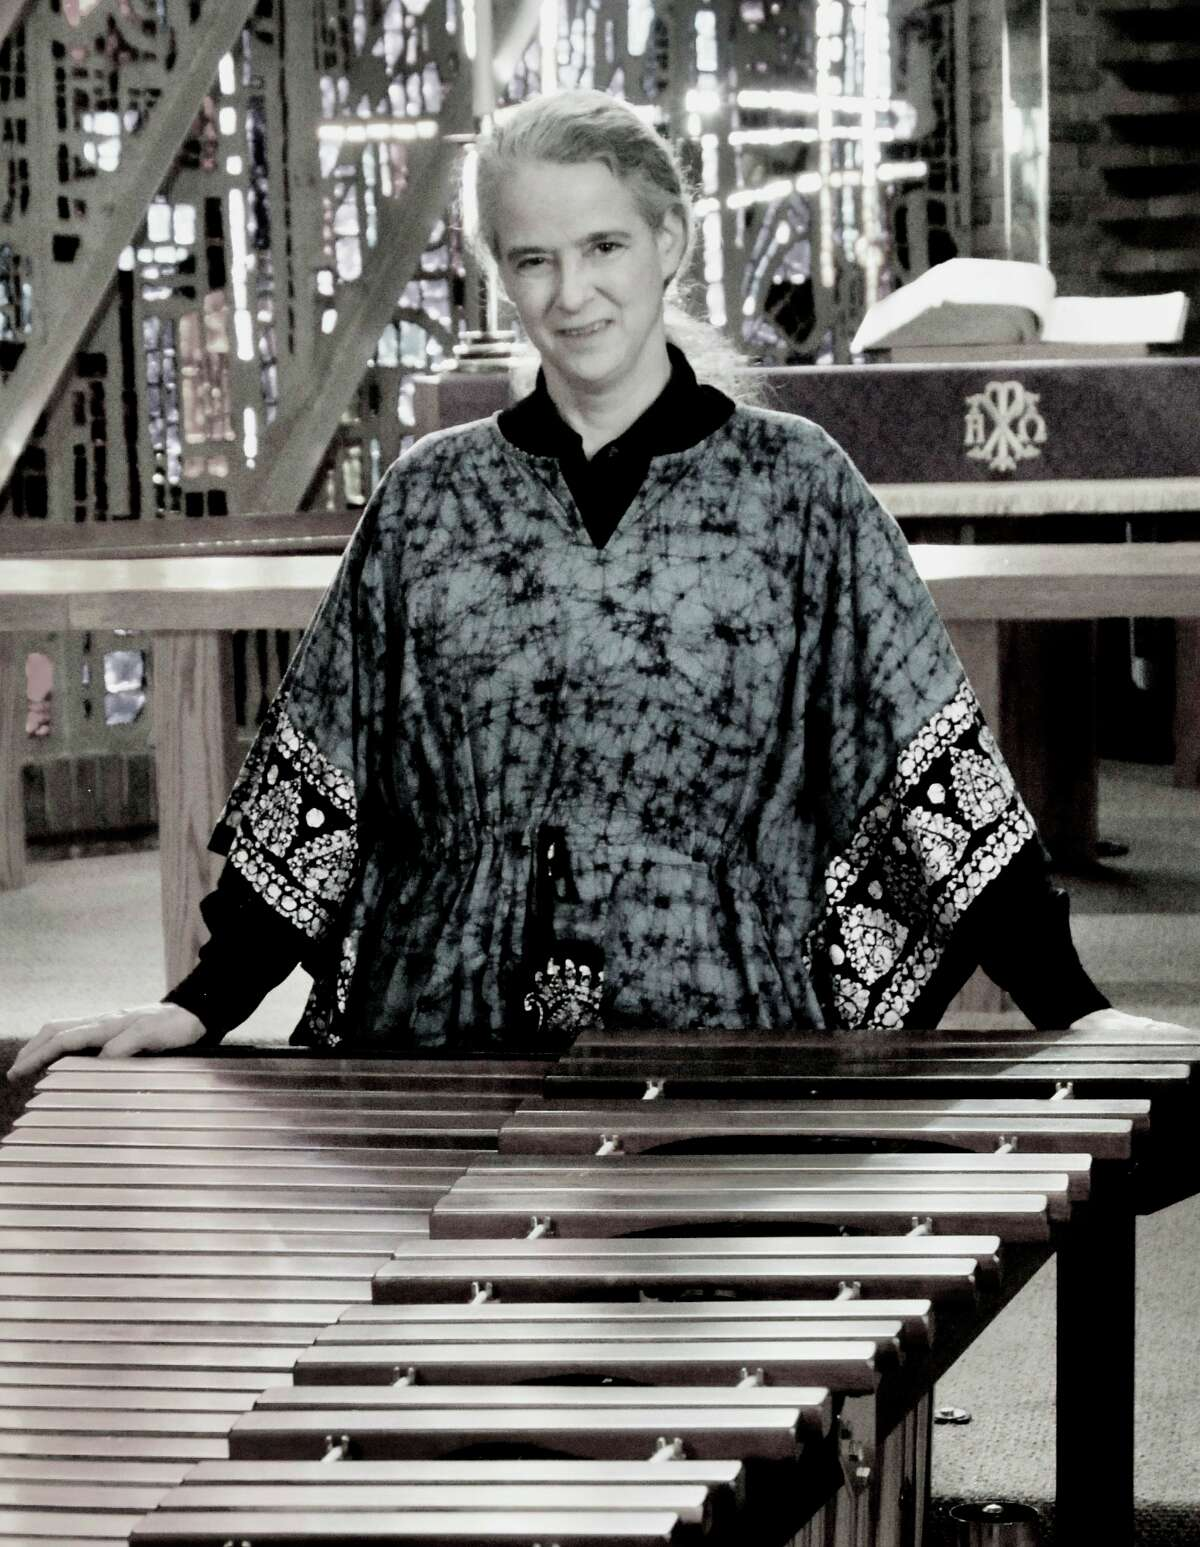 Joy Smith will presentrecital of music for meditation and healingat 7 p.m. on Aug. 5 and 6 at at Guardian Angels Church, hosted by the Guardian Angels Historic Preservation Project. (Courtesy photo)